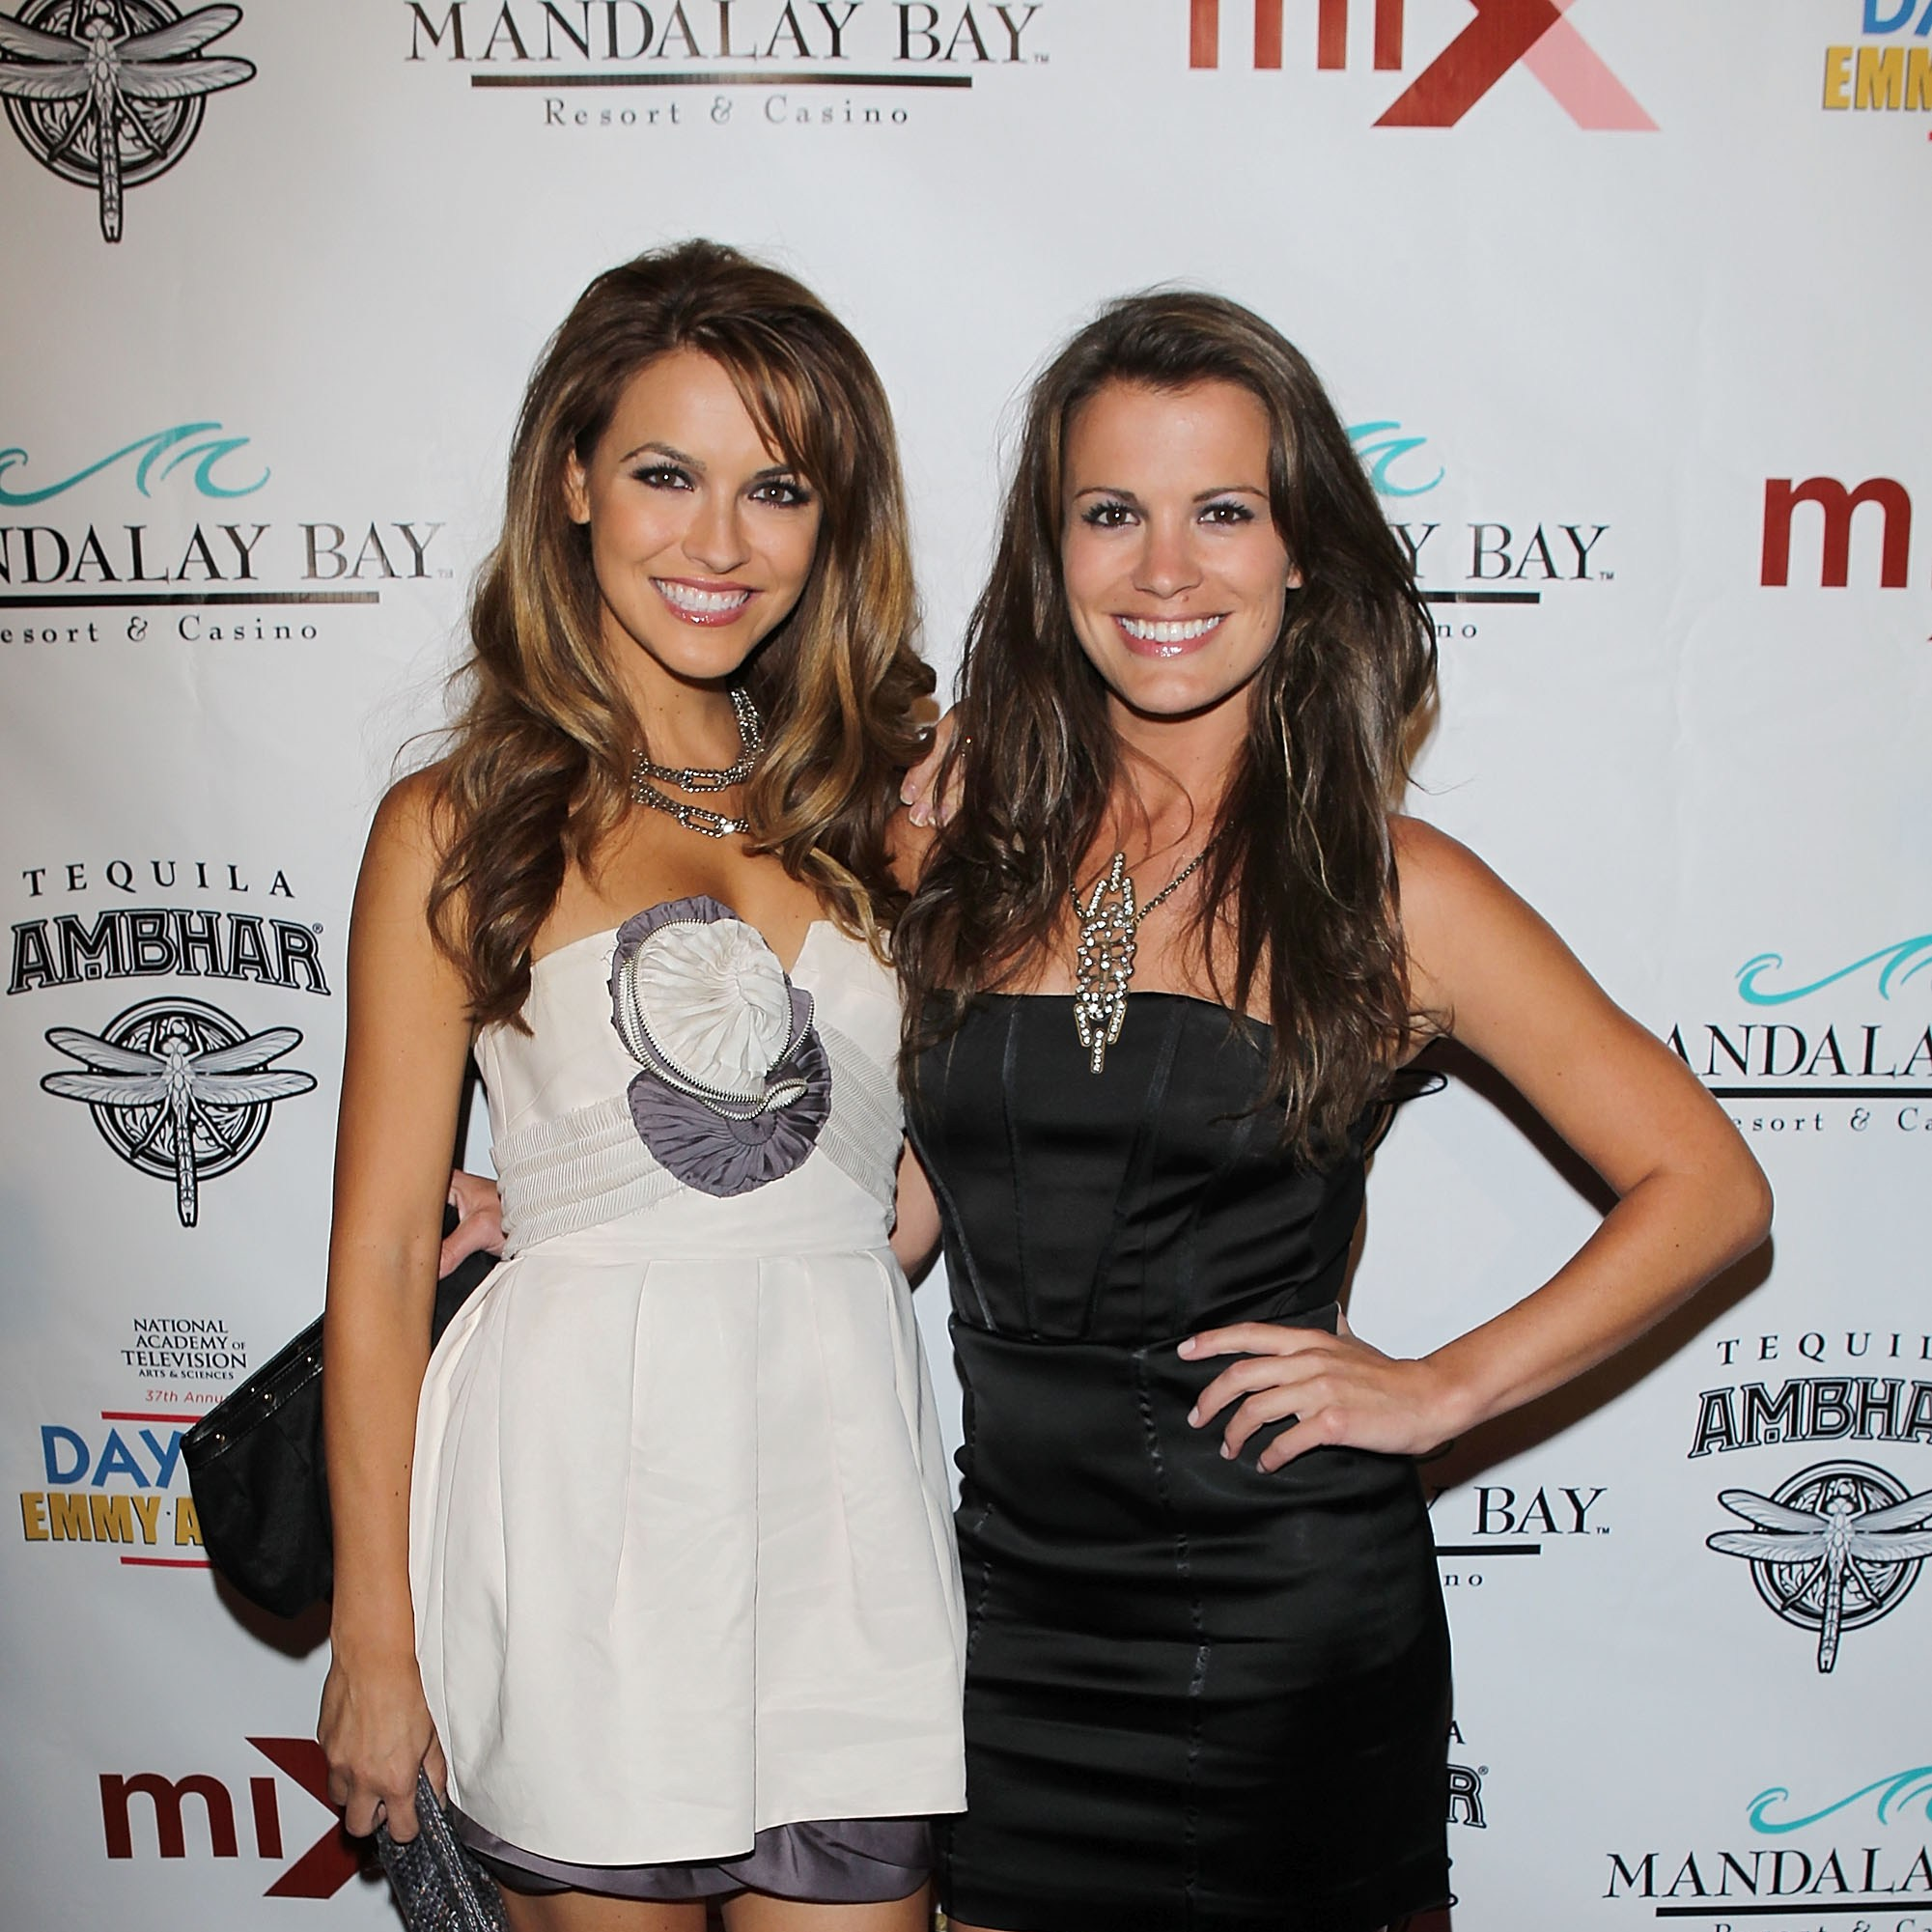 LAS VEGAS - JUNE 26:  Chrishell Stause (L) and Melissa Claire Egan arrive to the 2010 Daytime Emmy Awards Official Pre-Party held at miX Lounge - THEhotel at Mandalay Bay on June 26, 2010 in Las Vegas, Nevada.  (Photo by Michael Tran/FilmMagic)